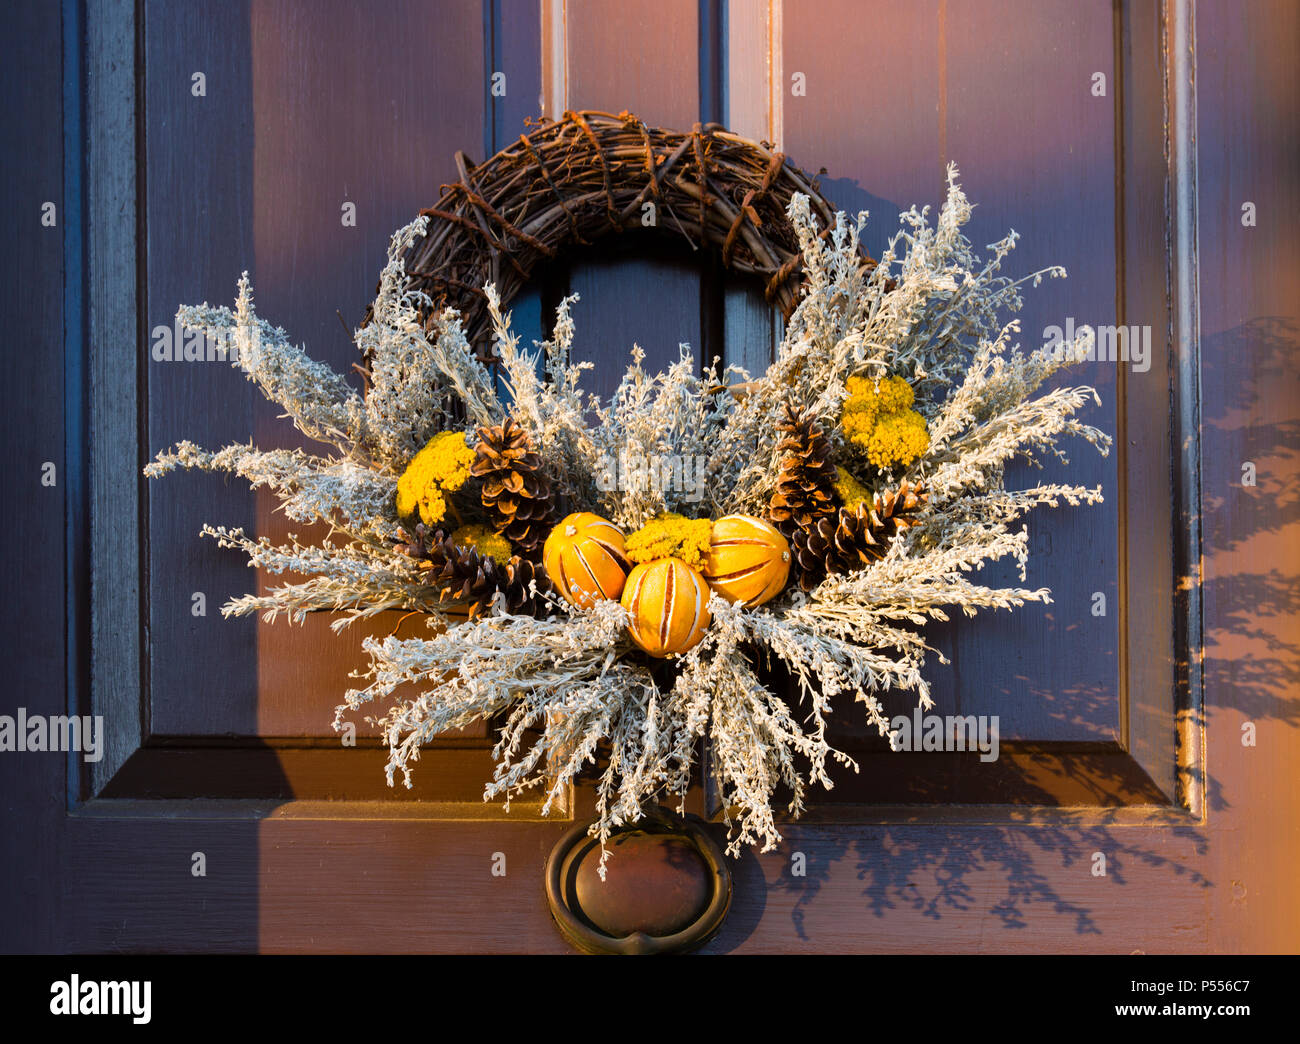 Split peel dried oranges and pine cones wreath on door. Entry in annual Christmas natural materials wreath competition in Colonial Williamsburg, VA. Stock Photo